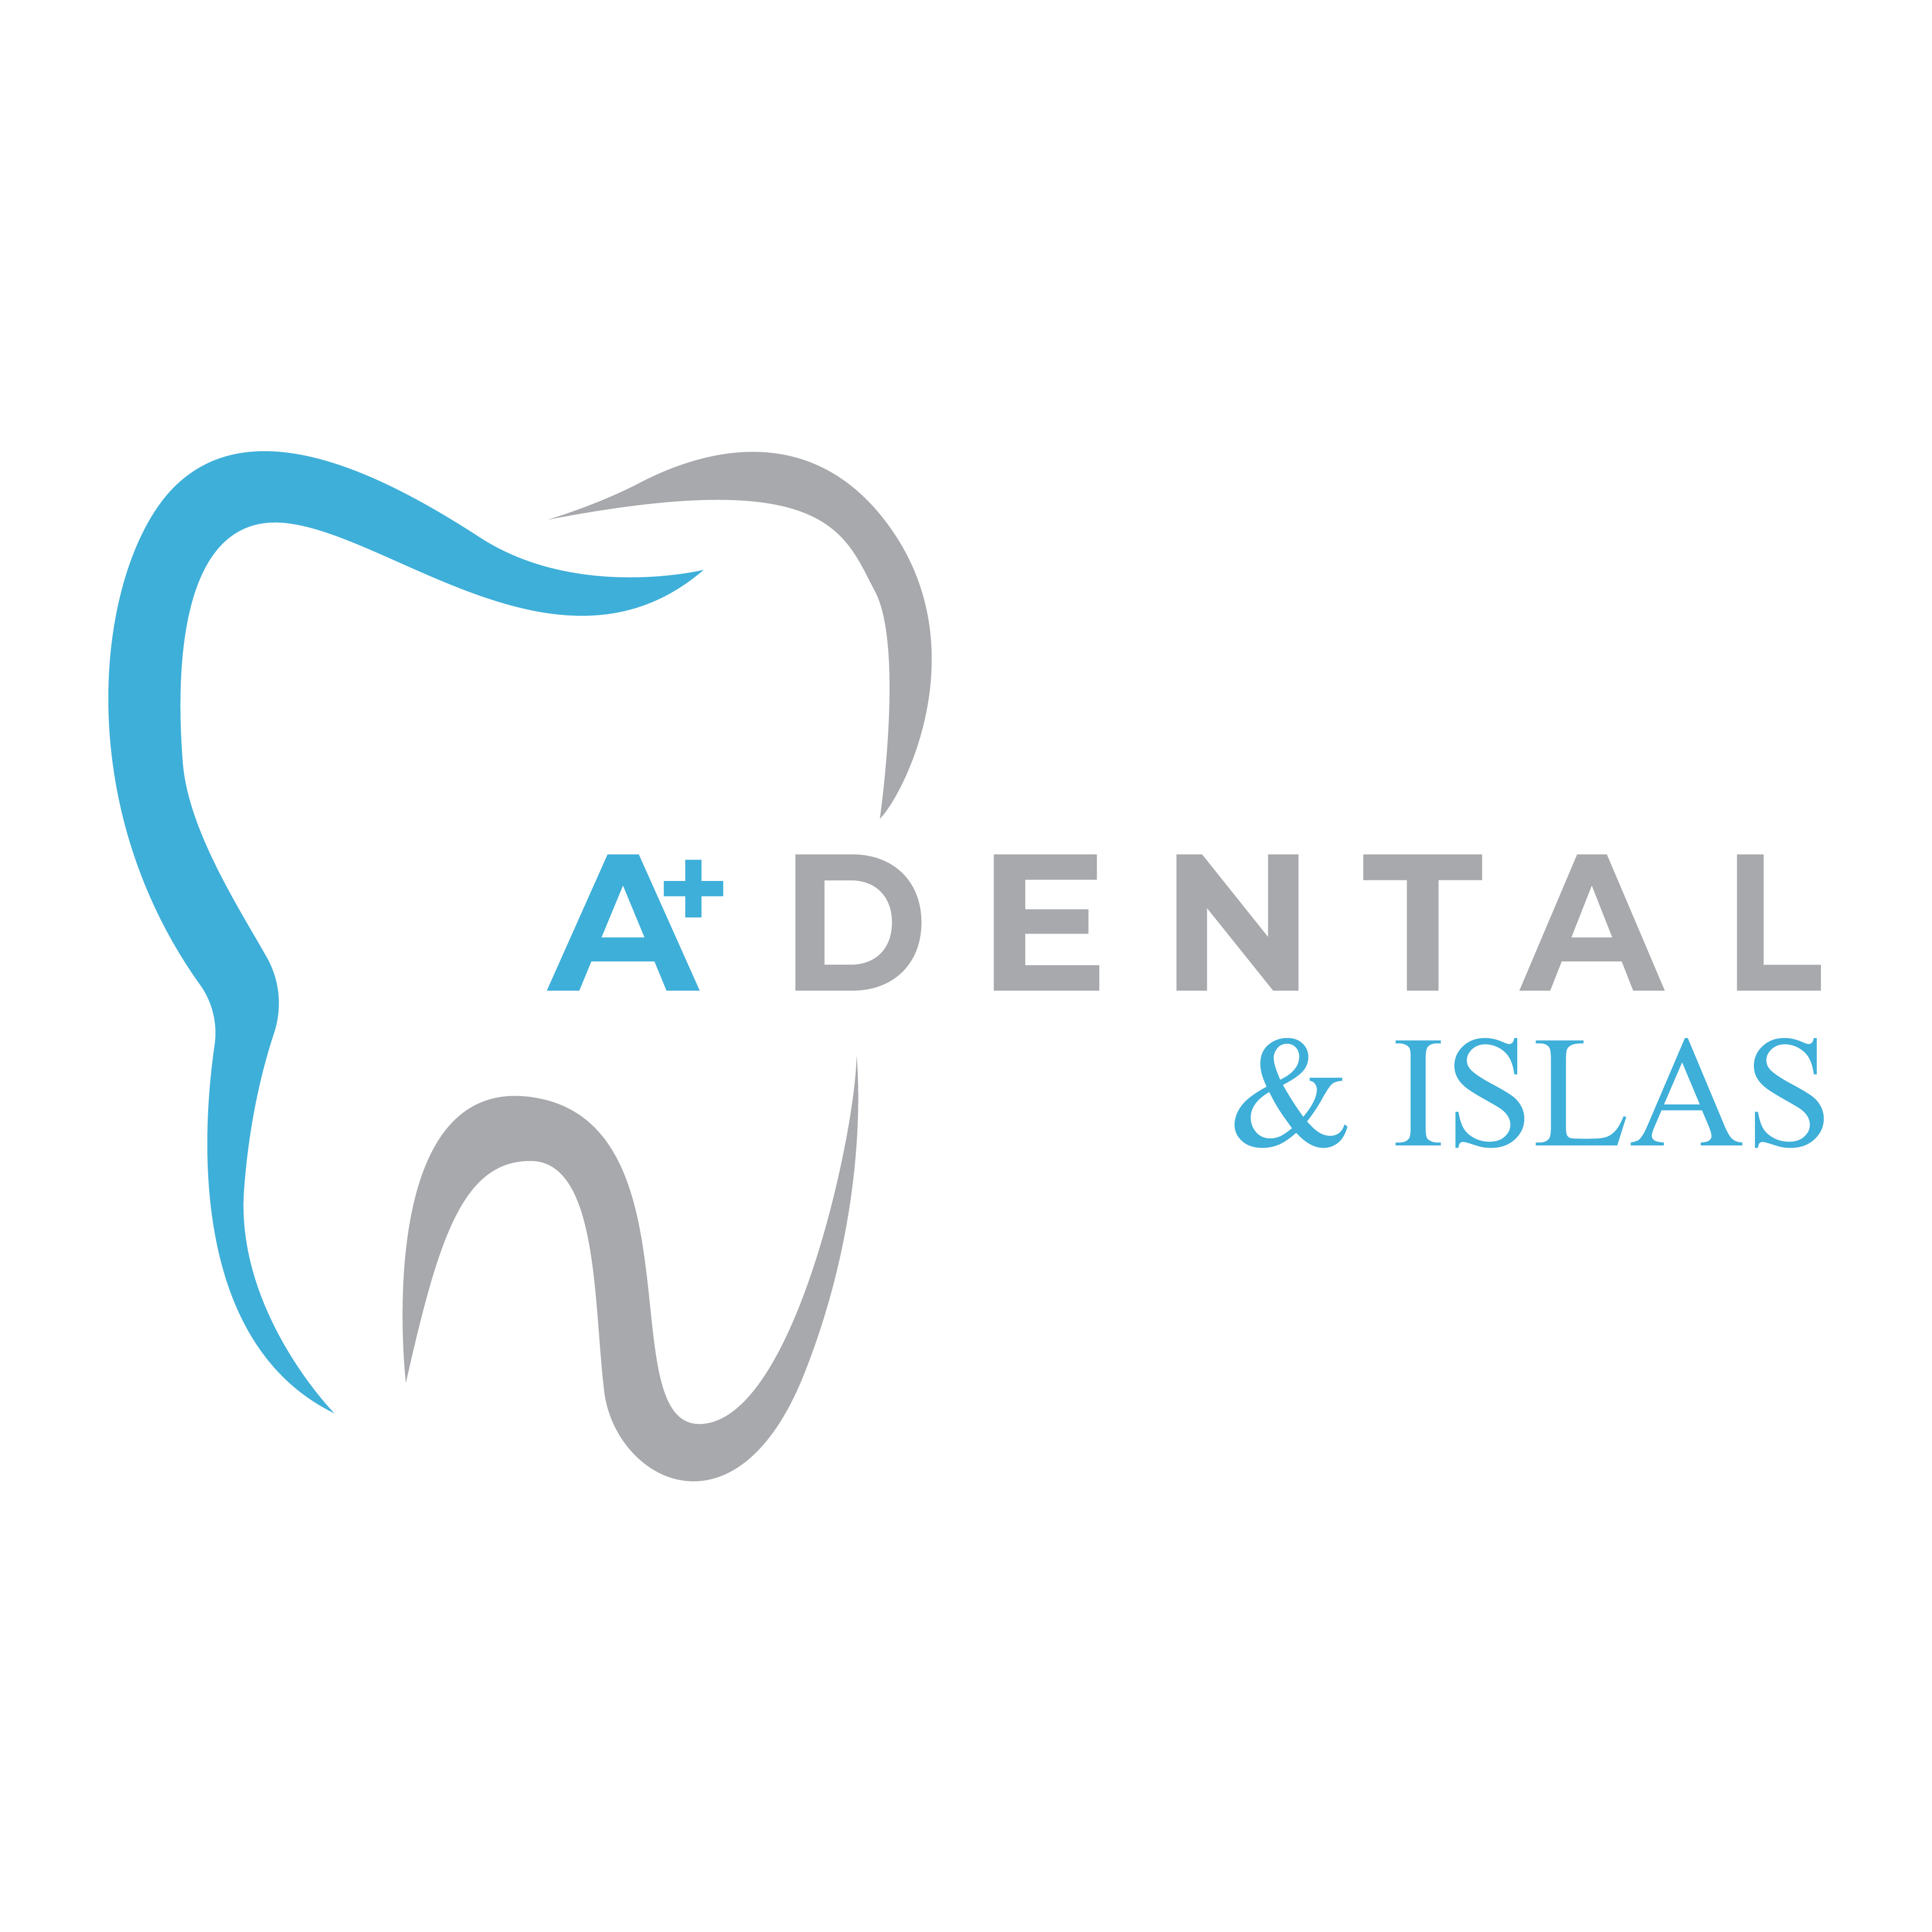 A+ Dental & Islas